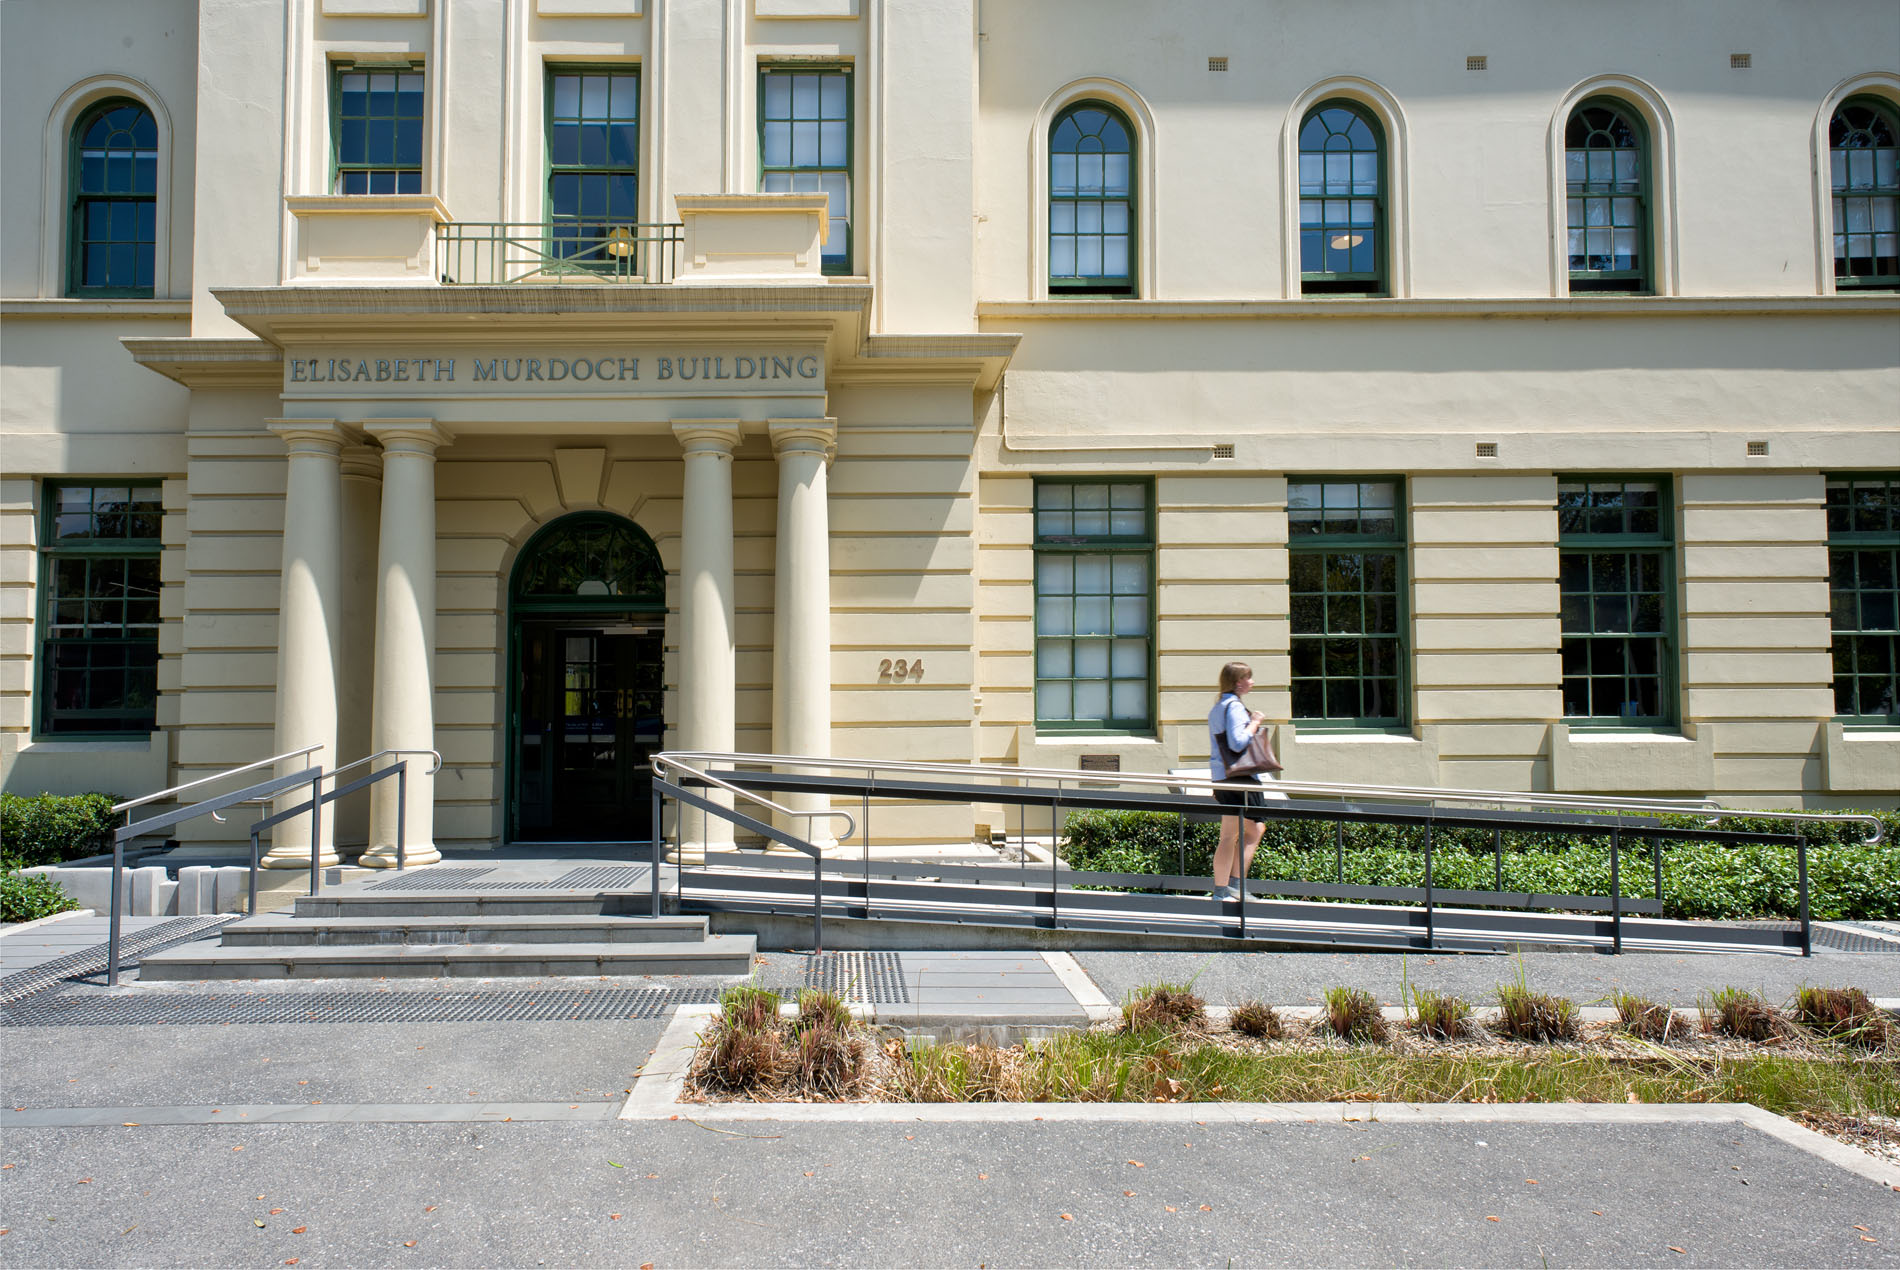 CLIENT  |     University of Melbourne/VCA     LOCATION  |      South Melbourne     COMPLETED  |      2     VALUE  |      $6m      The Elizabeth Murdoch building is effectively the 'front door' of the Melbourne University's Victorian College of the Arts (VCA) campus. It houses the main administration area, research functions and student centre, as well as the main multi-media presentation space for the VCA. Both the Dean and Head of School are located in this building.  The $6m project, involved the staged refurbishment of the former police barracks, a building listed on the Victorian Heritage Register. Our brief was to incorporate all the required functional areas and equip the building appropriate for future teaching practices, as well as improving access for people with disabilities.  A key challenge involved the incorporation of the new IT infrastructure. Our efficient planning strategy enabled the Finance Department to be collocated with the other administrative areas, so that the post-graduate research area could be located on the top floor.  Further, the VCA sought from us a design that gave them a strong sense of identity, within the historic structure, expressing the creativity and integrity of their programme. Working within a very tight budget, our design is characterised by carefully crafted materials and finishes, providing positive and energising spaces throughout, that work well with the historic fabric of the building.